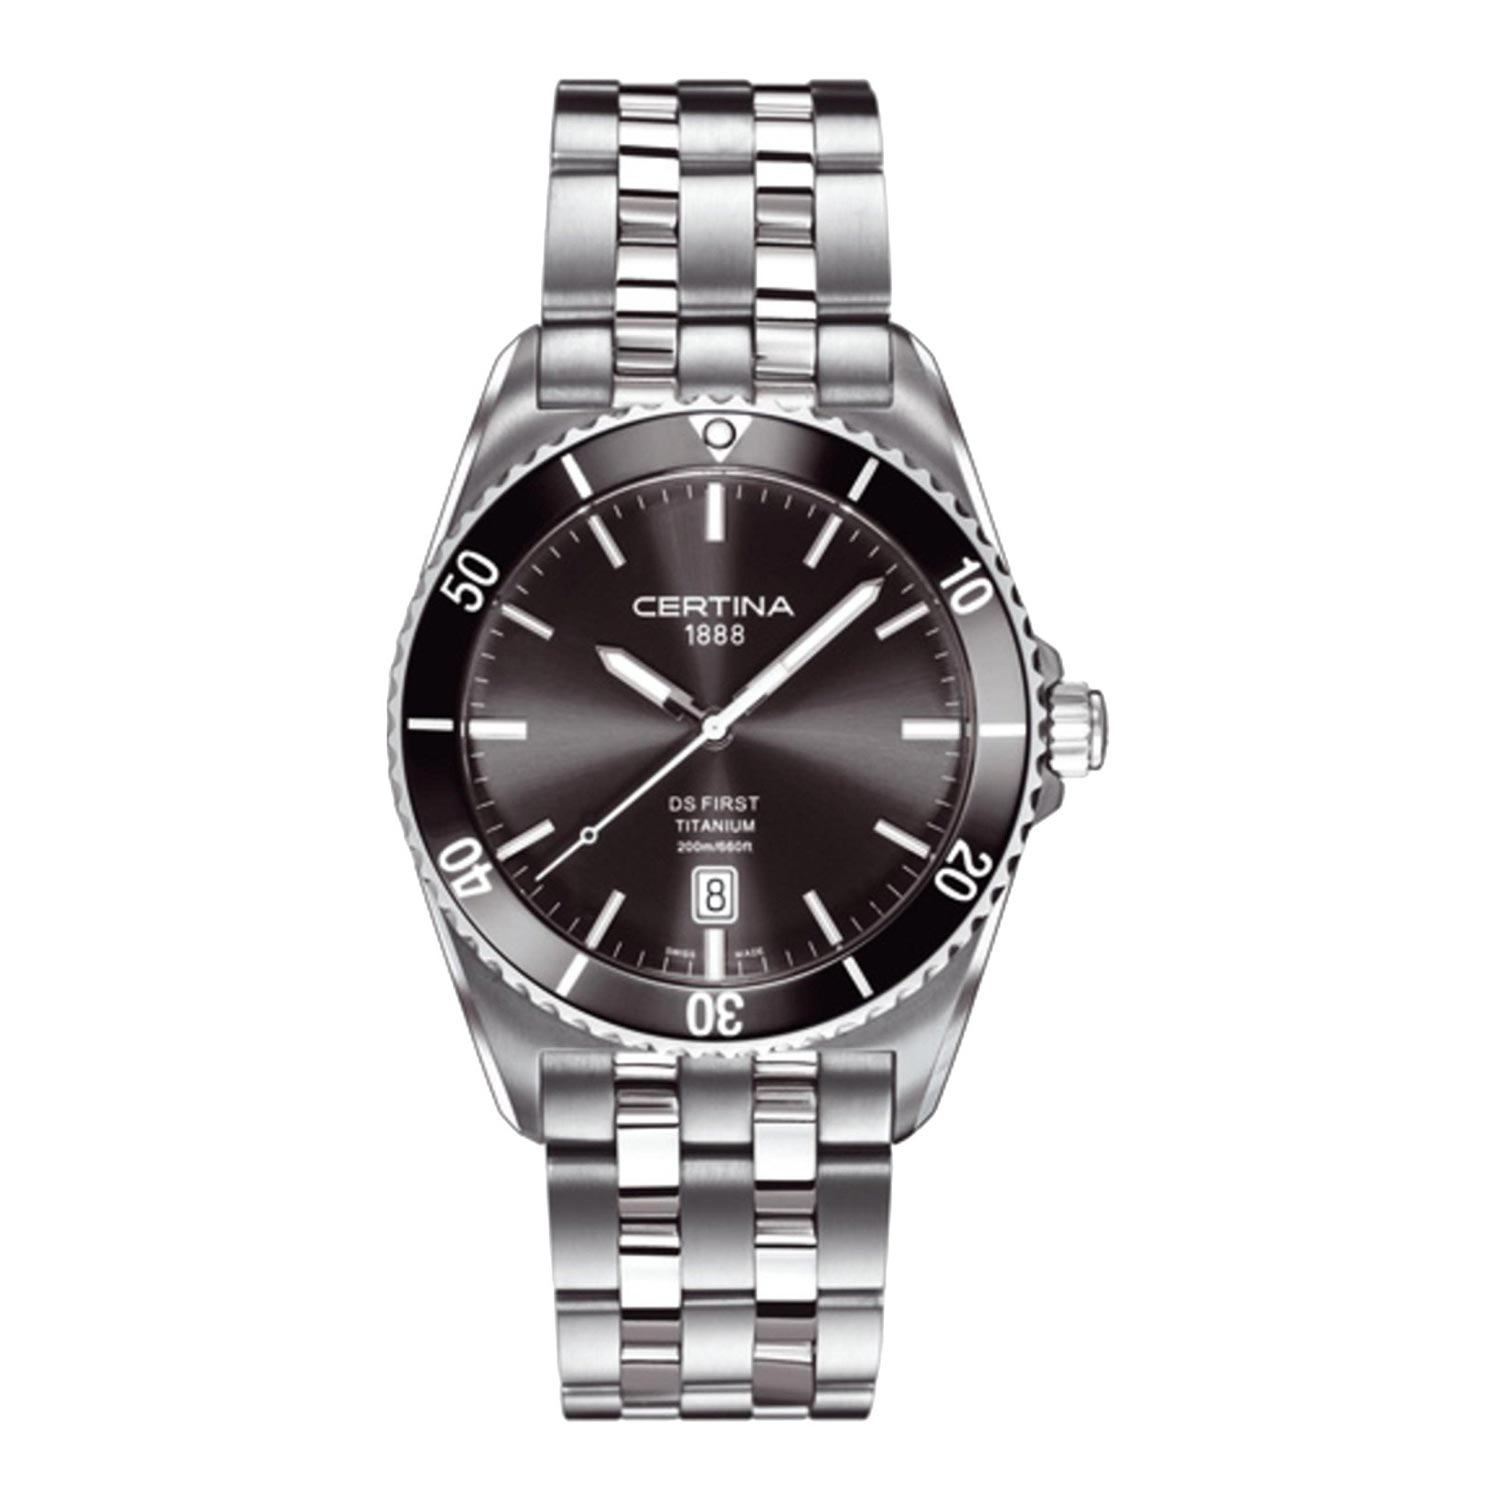 Herrenuhr Titan Certina Ds First Titanium C014 410 44 081 00 Analoge